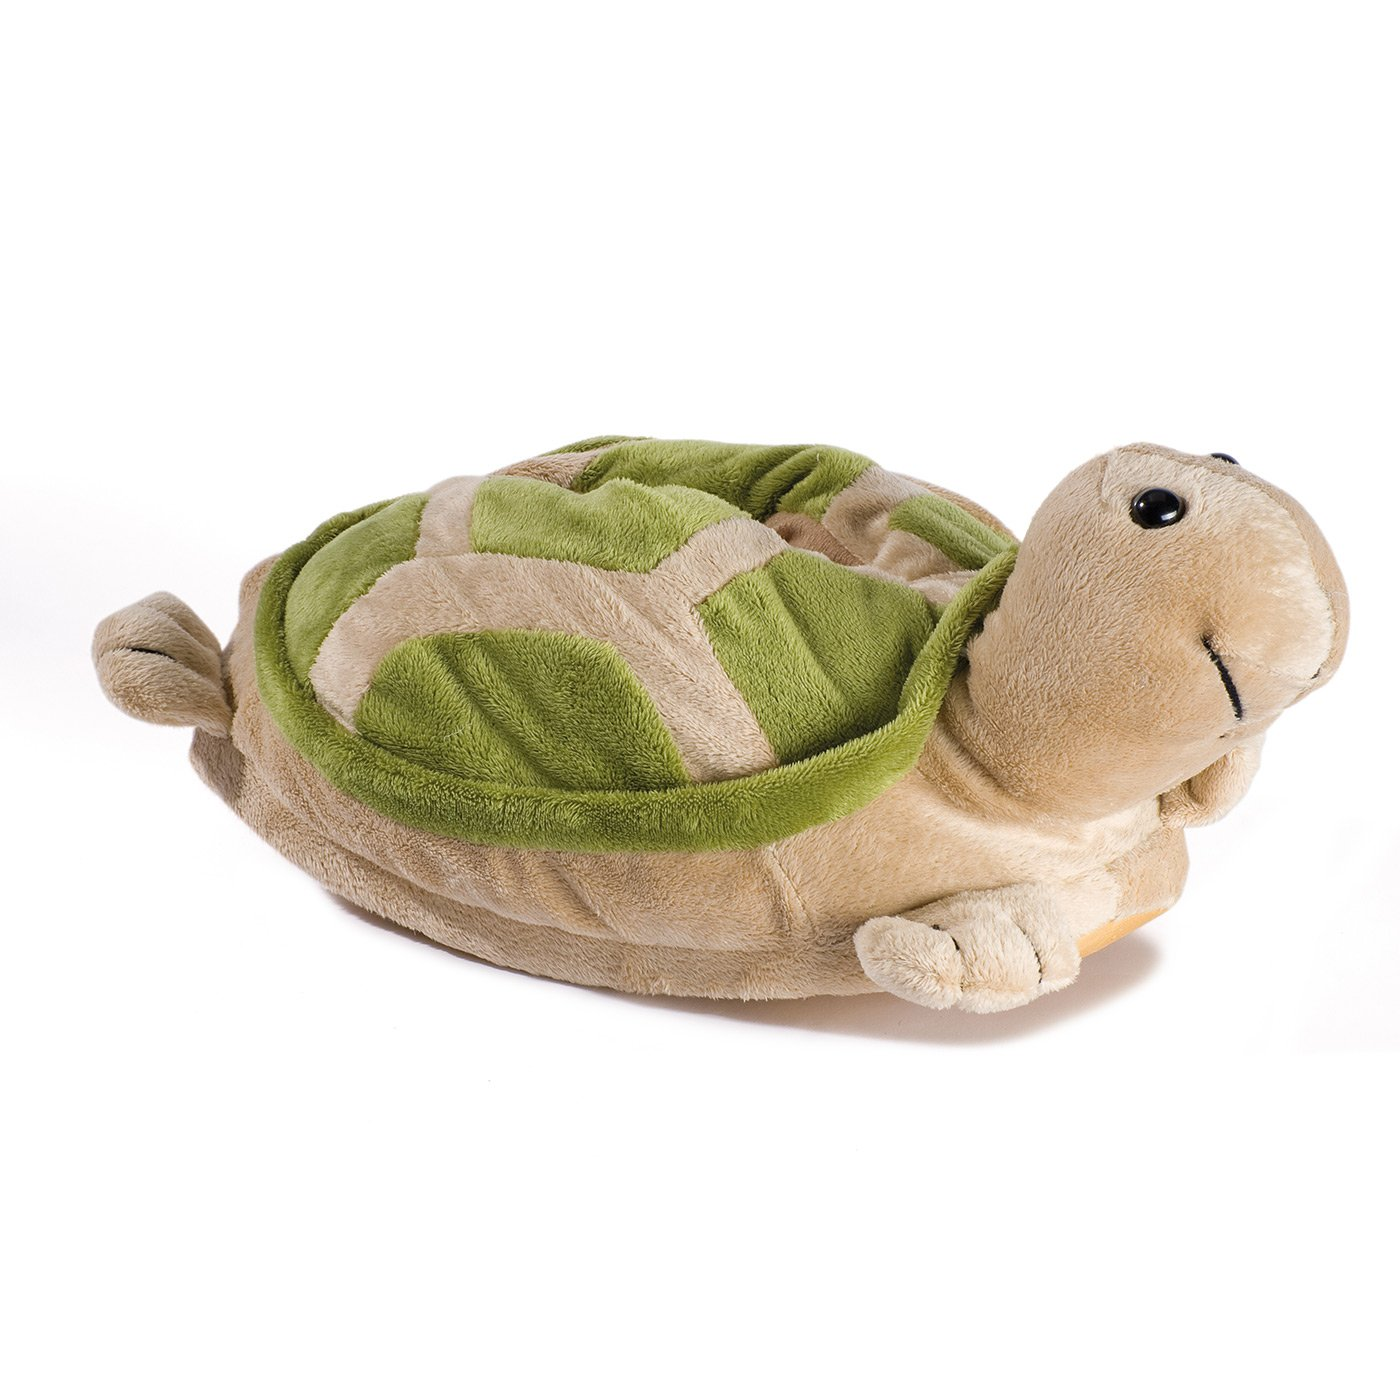 Funslippers Unisex Plush Indoor Novelty Slippers Animal Turtle Green